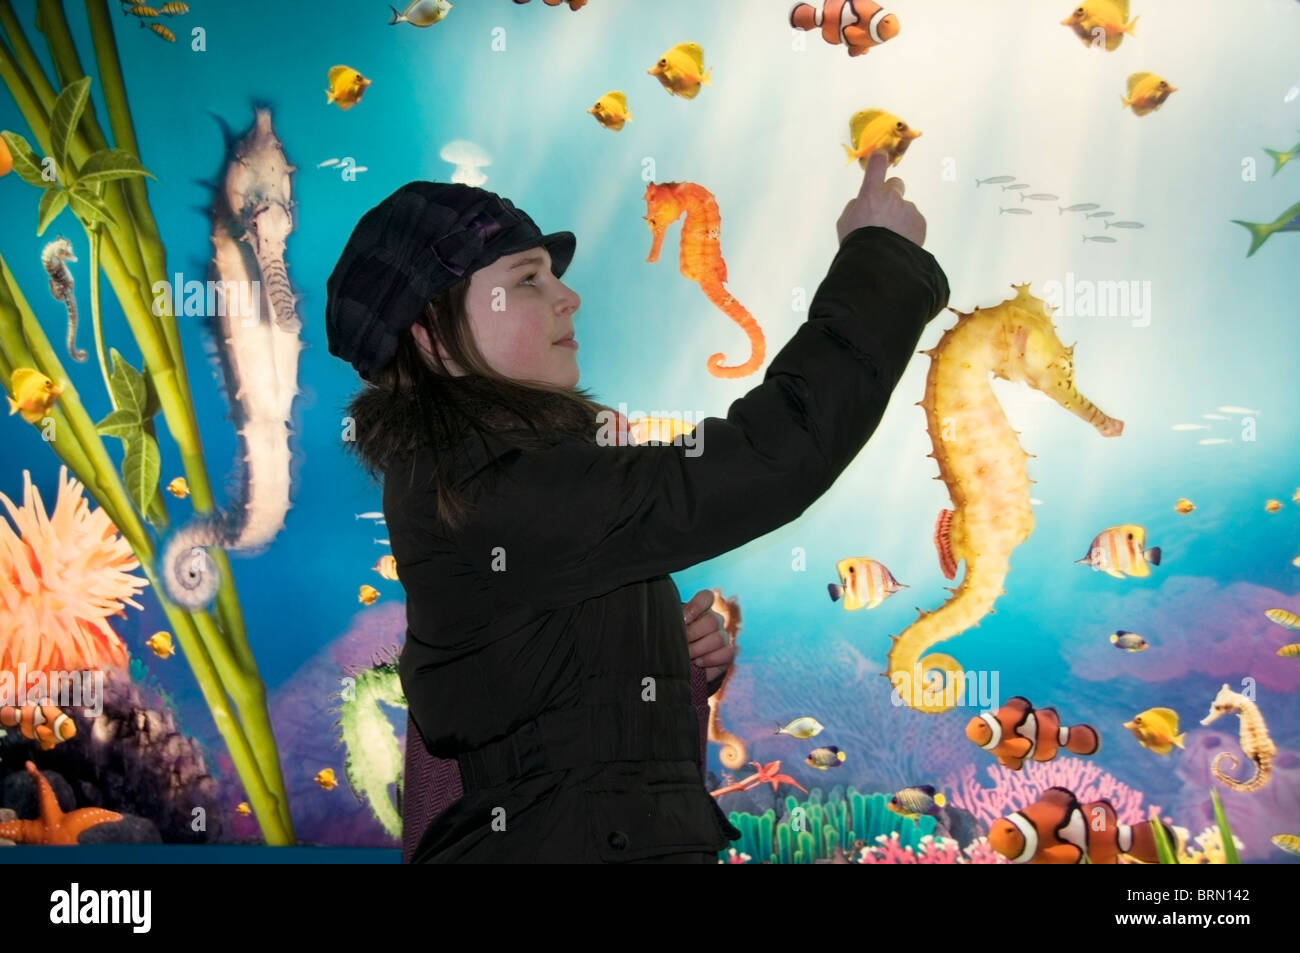 Polish tourist Young girl, 10-11 year old teenager profile, pointing to fish on display at London Aquarium, England, - Stock Image